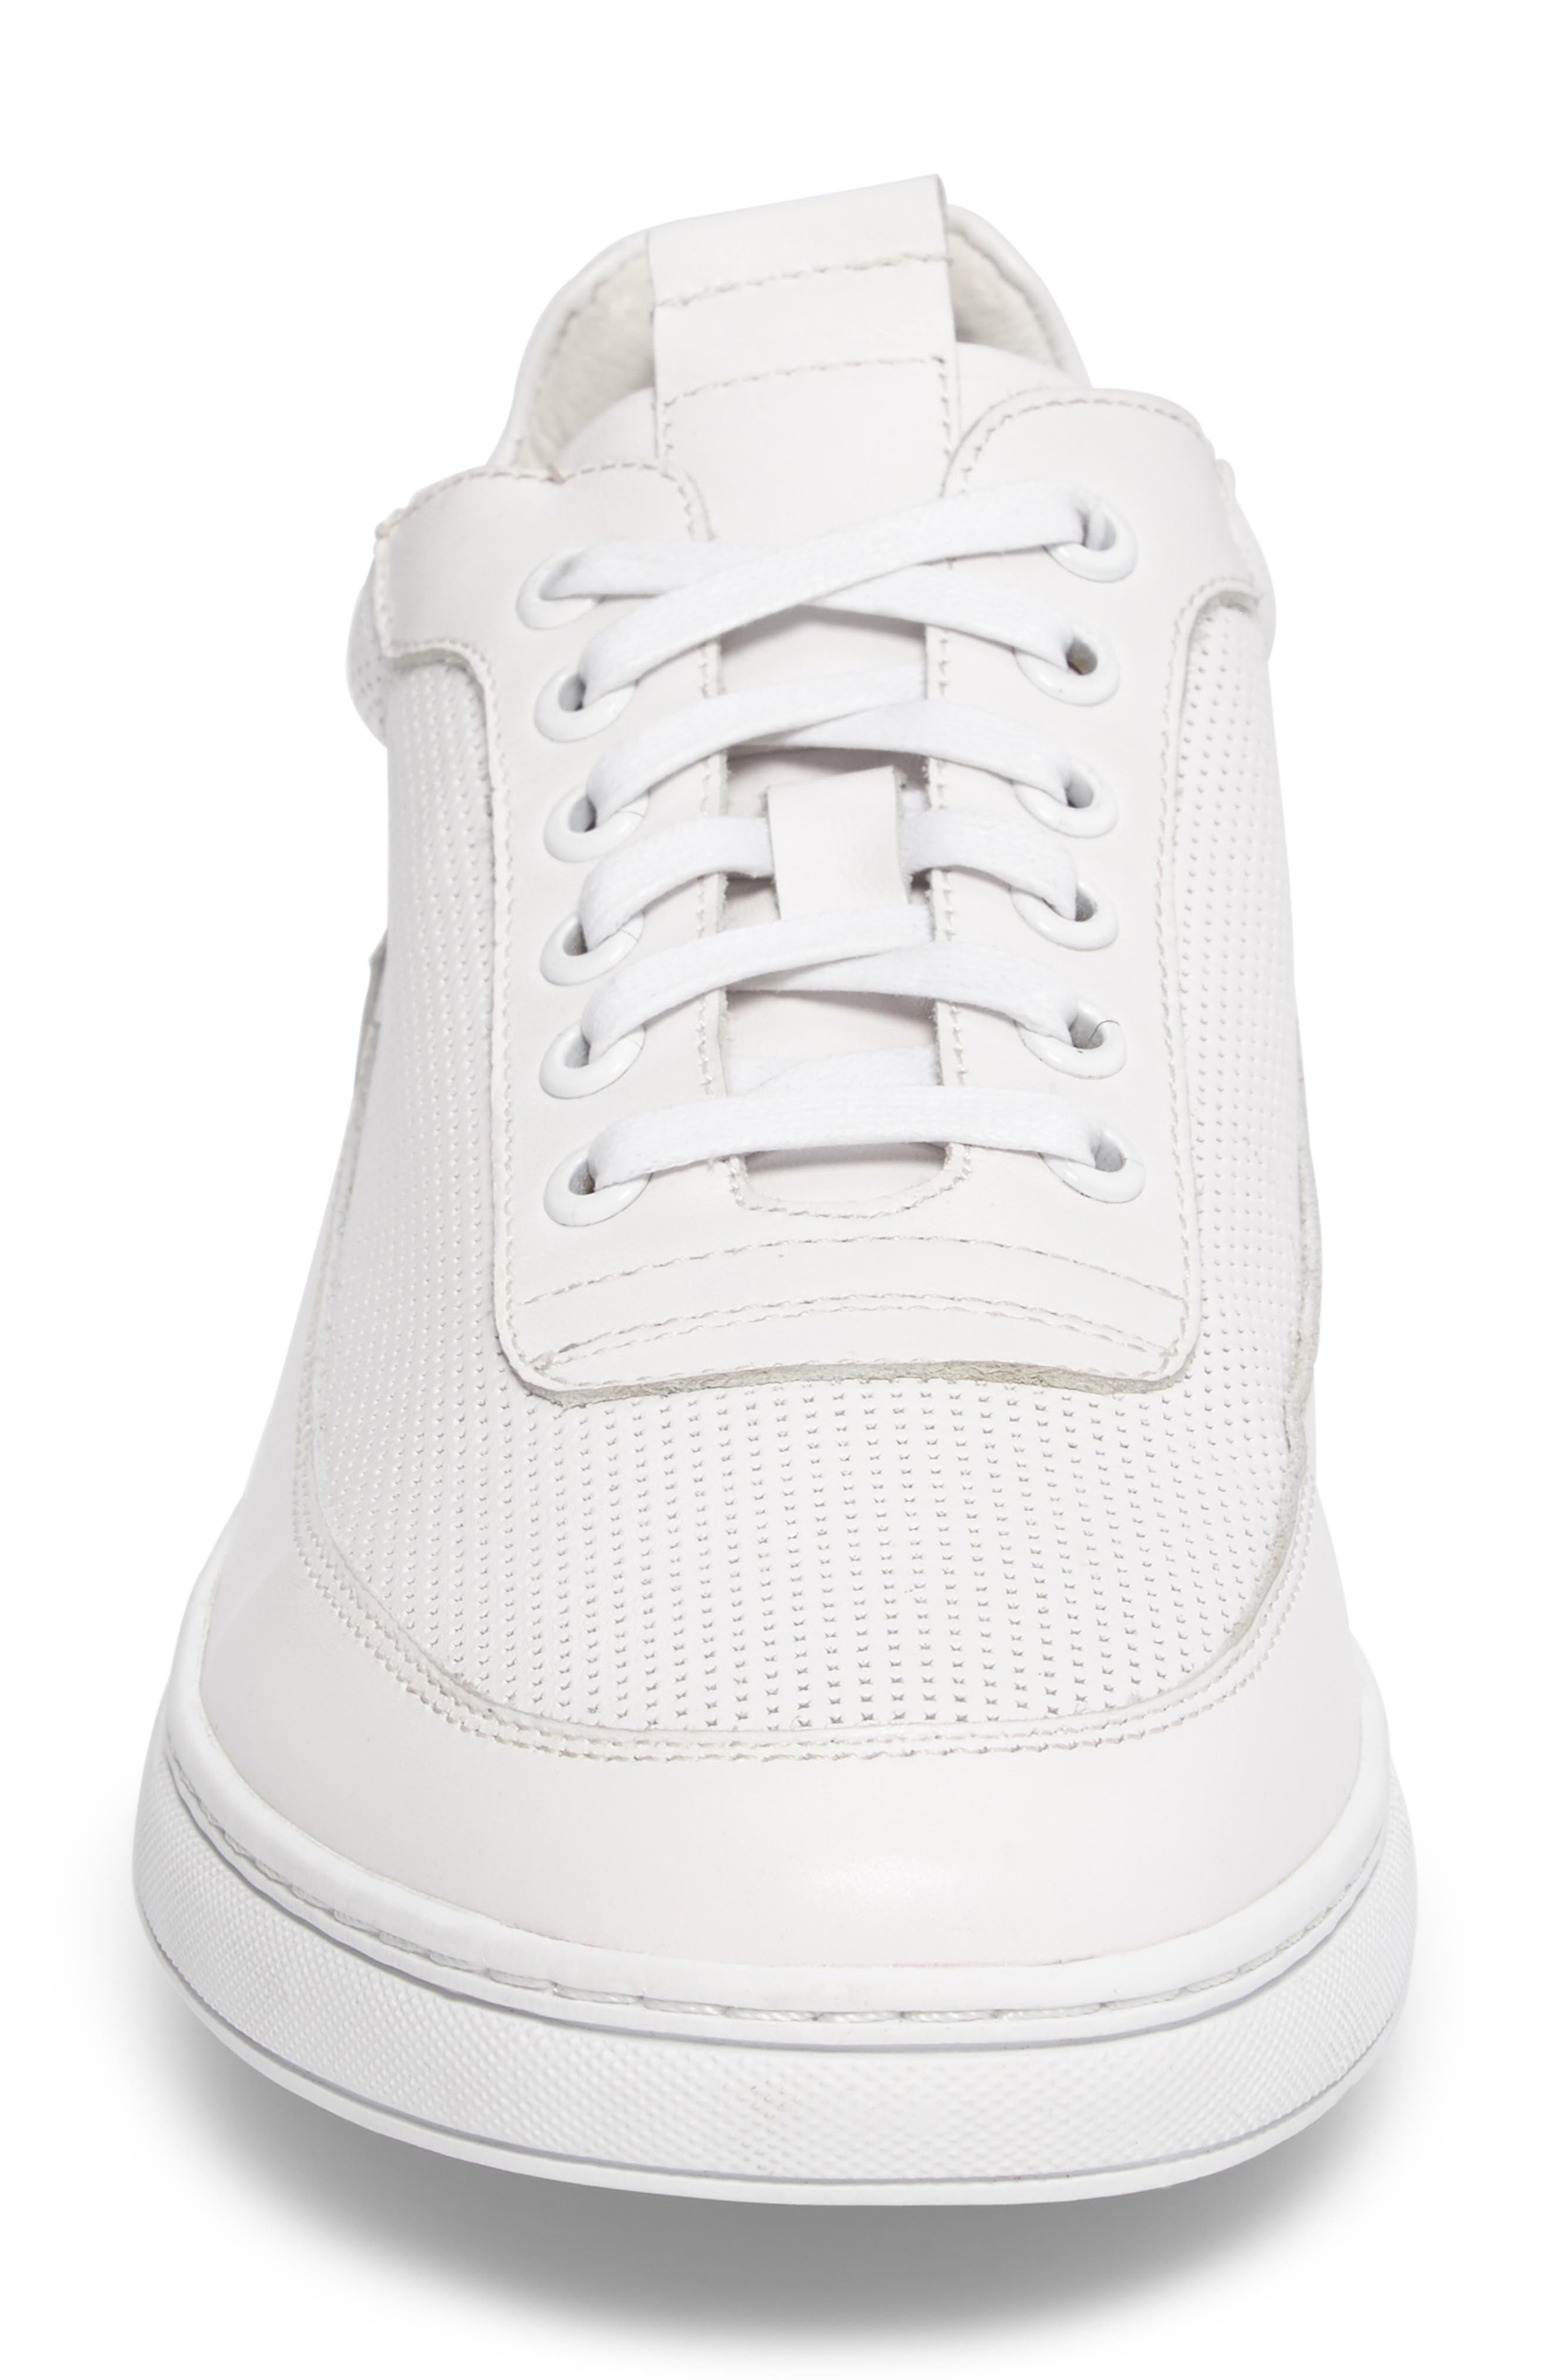 Harmony Sneaker,                             Alternate thumbnail 4, color,                             WHITE LEATHER